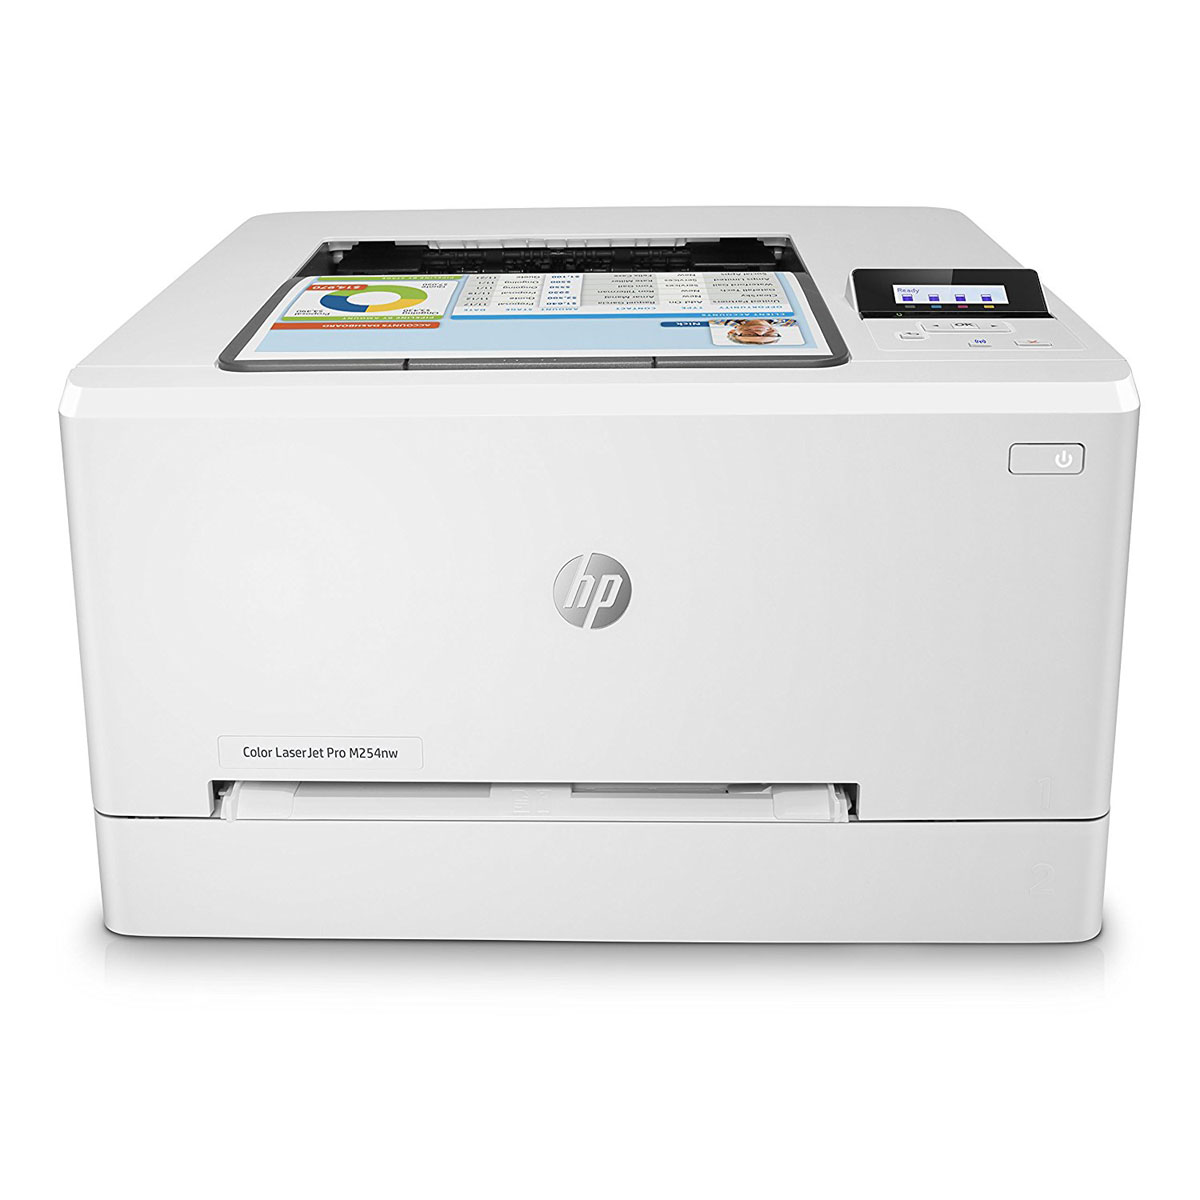 hp color laserjet pro m254nw imprimante laser hp sur. Black Bedroom Furniture Sets. Home Design Ideas